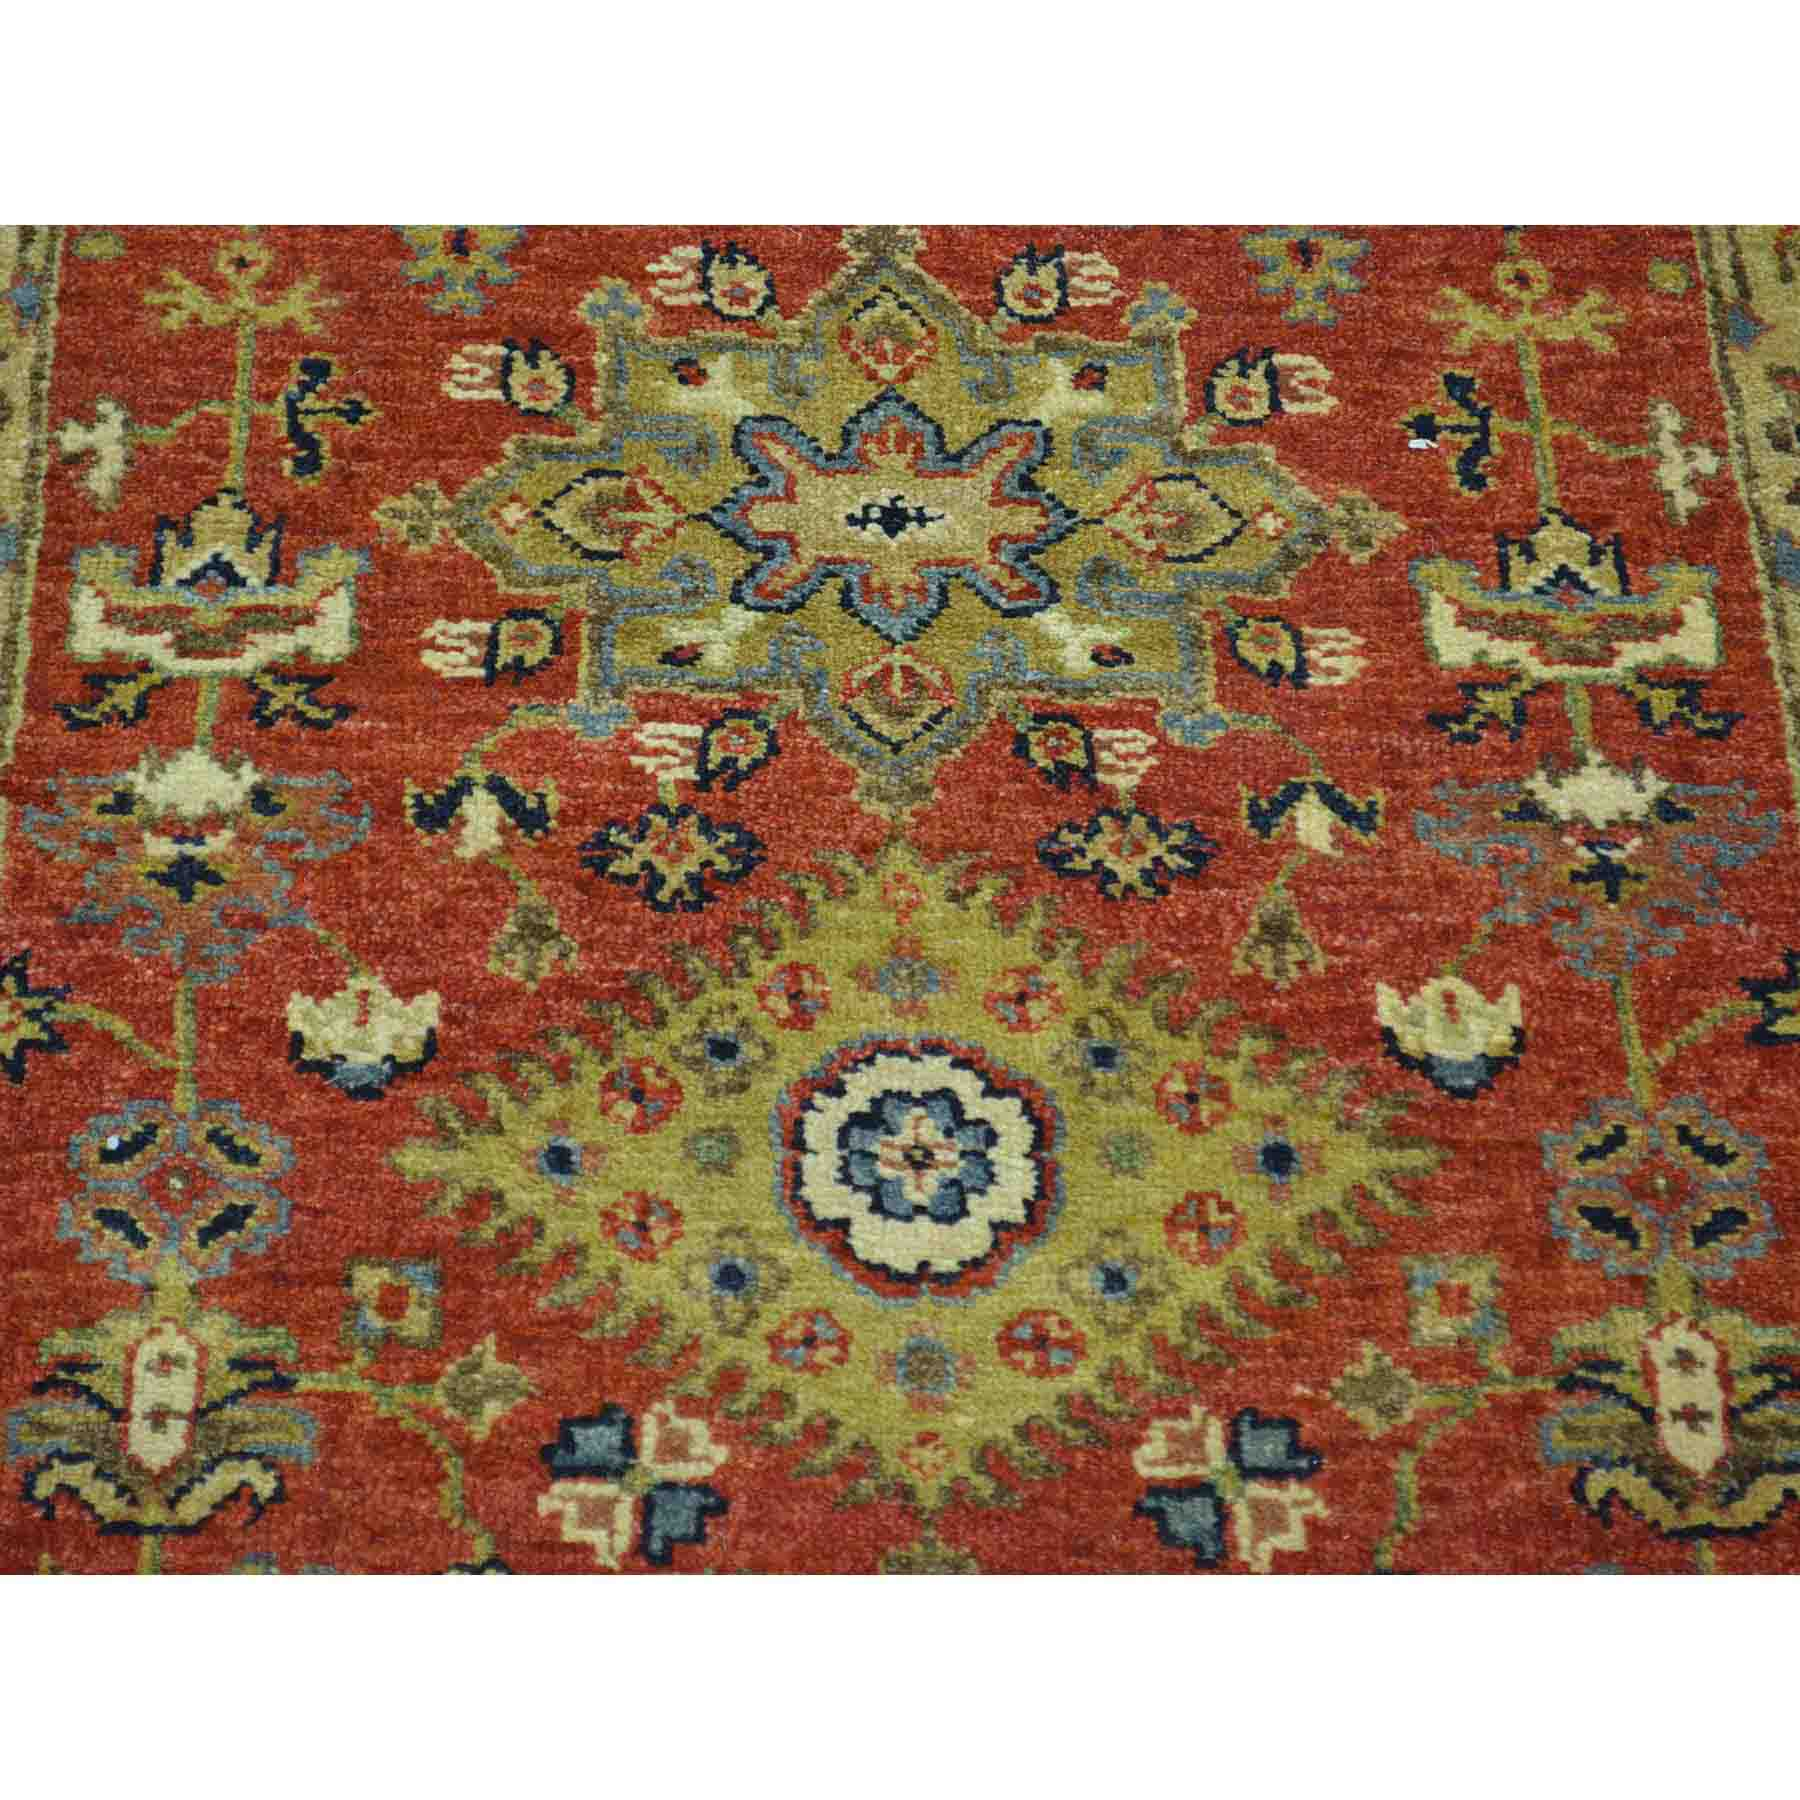 Heriz-Hand-Knotted-Rug-148505